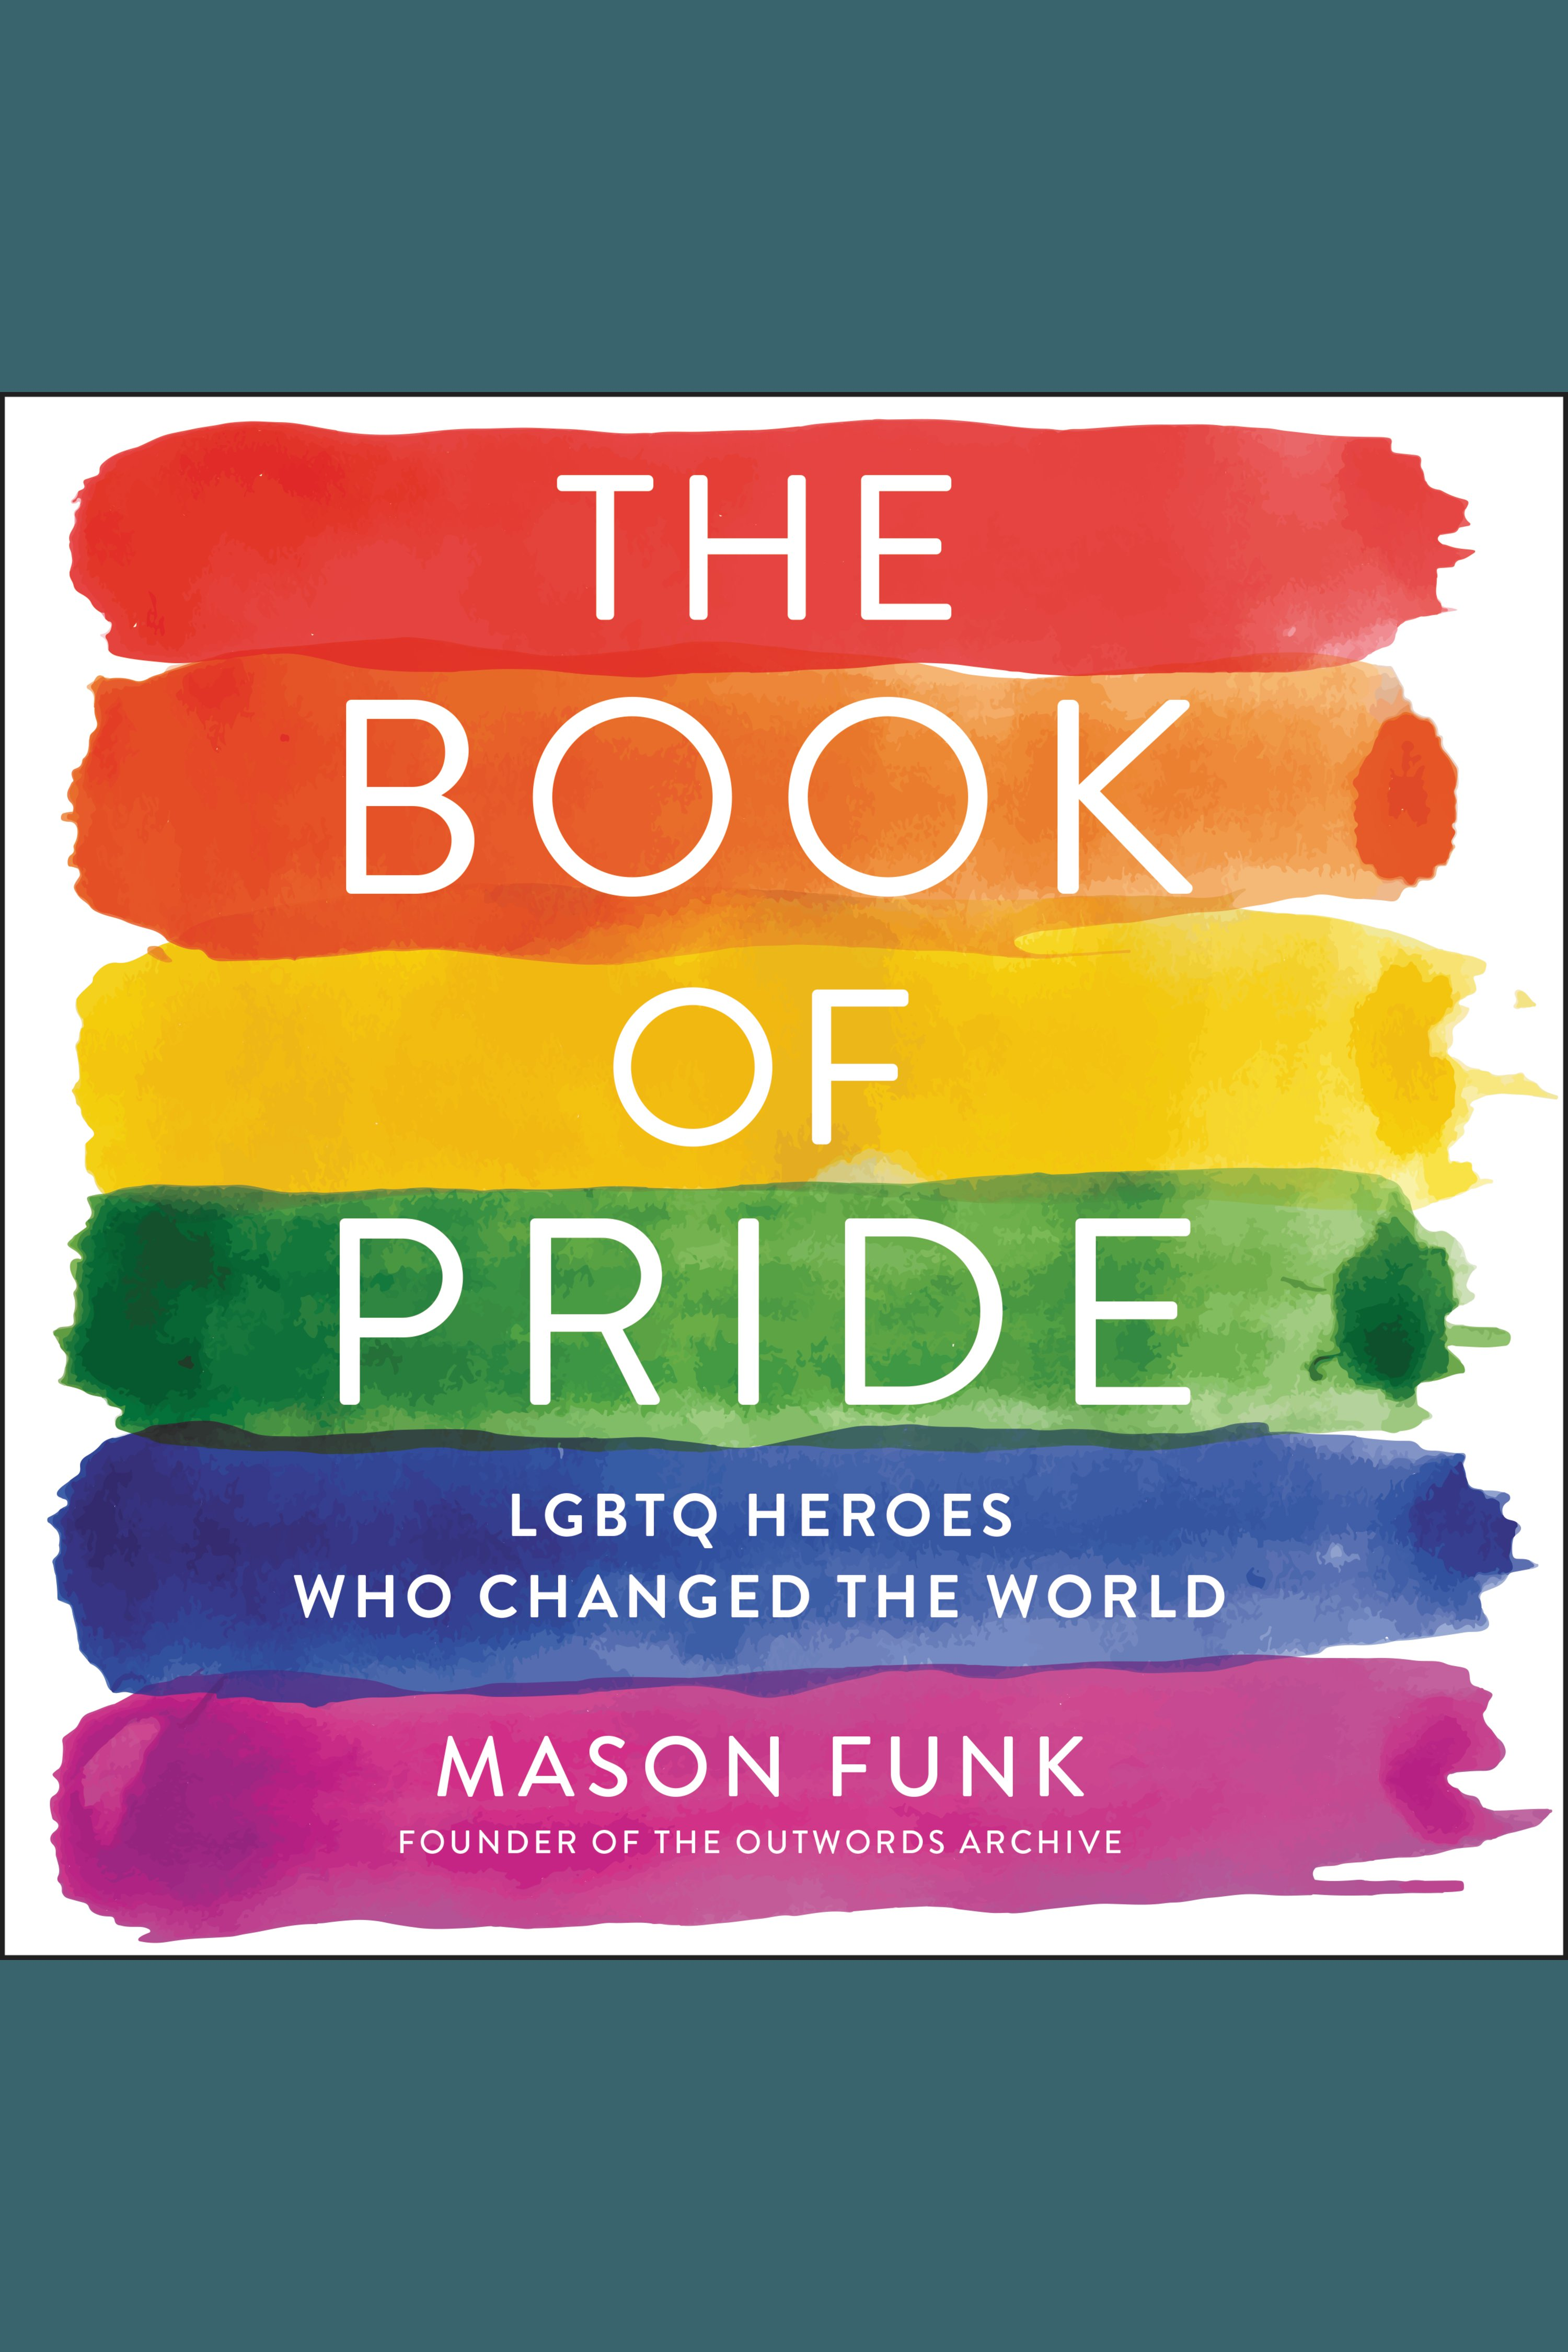 Book of Pride, The LGBTQ Heroes Who Changed the World